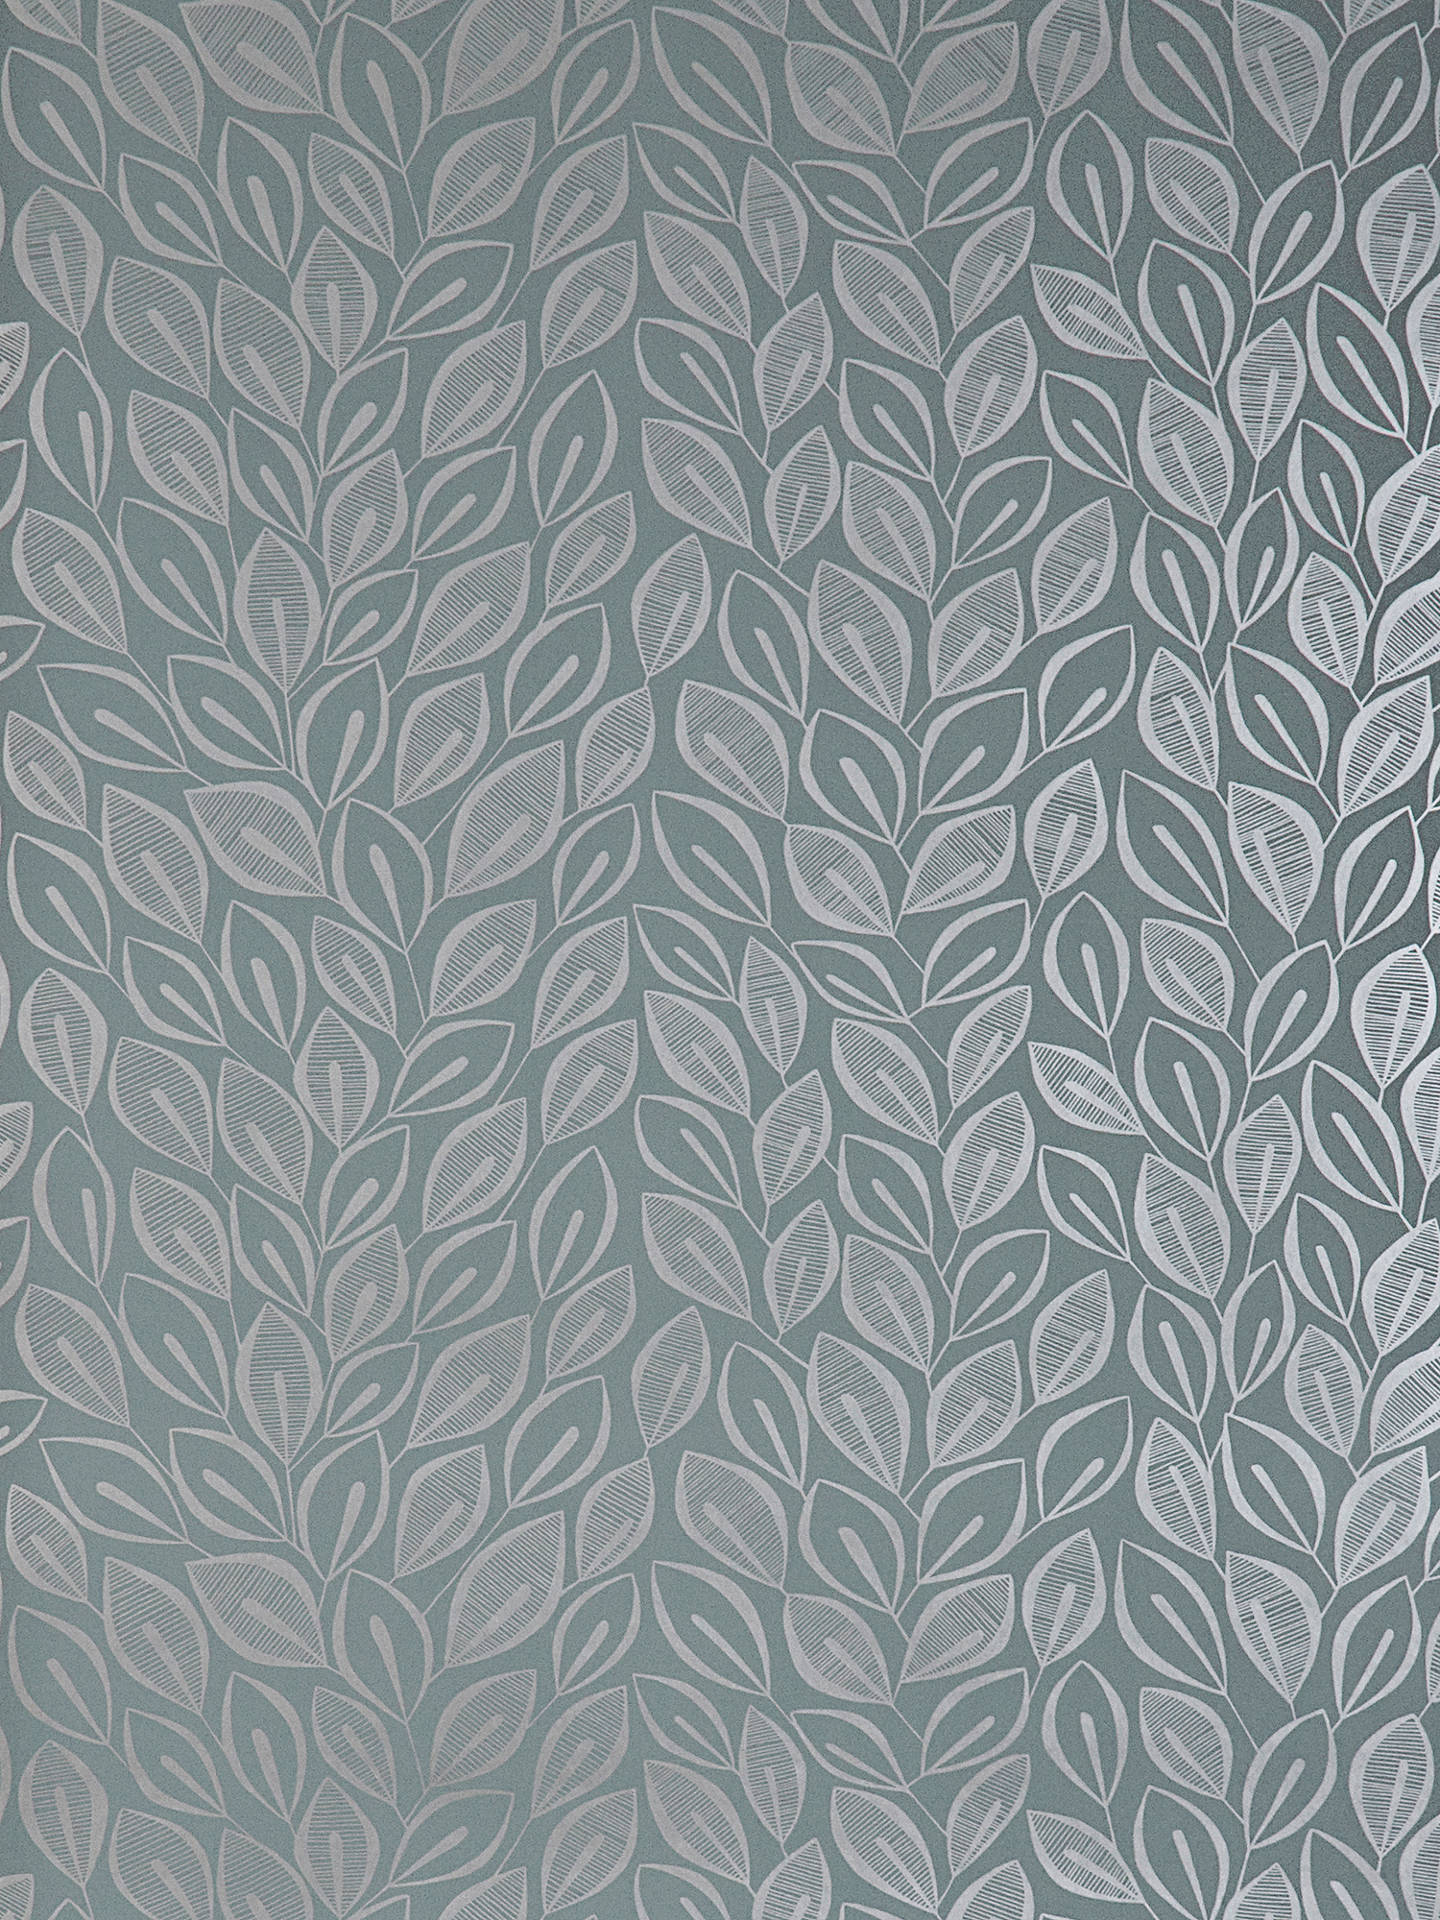 Buy MissPrint Leaves Wallpaper, Graphite, MISP1029 Online at johnlewis.com